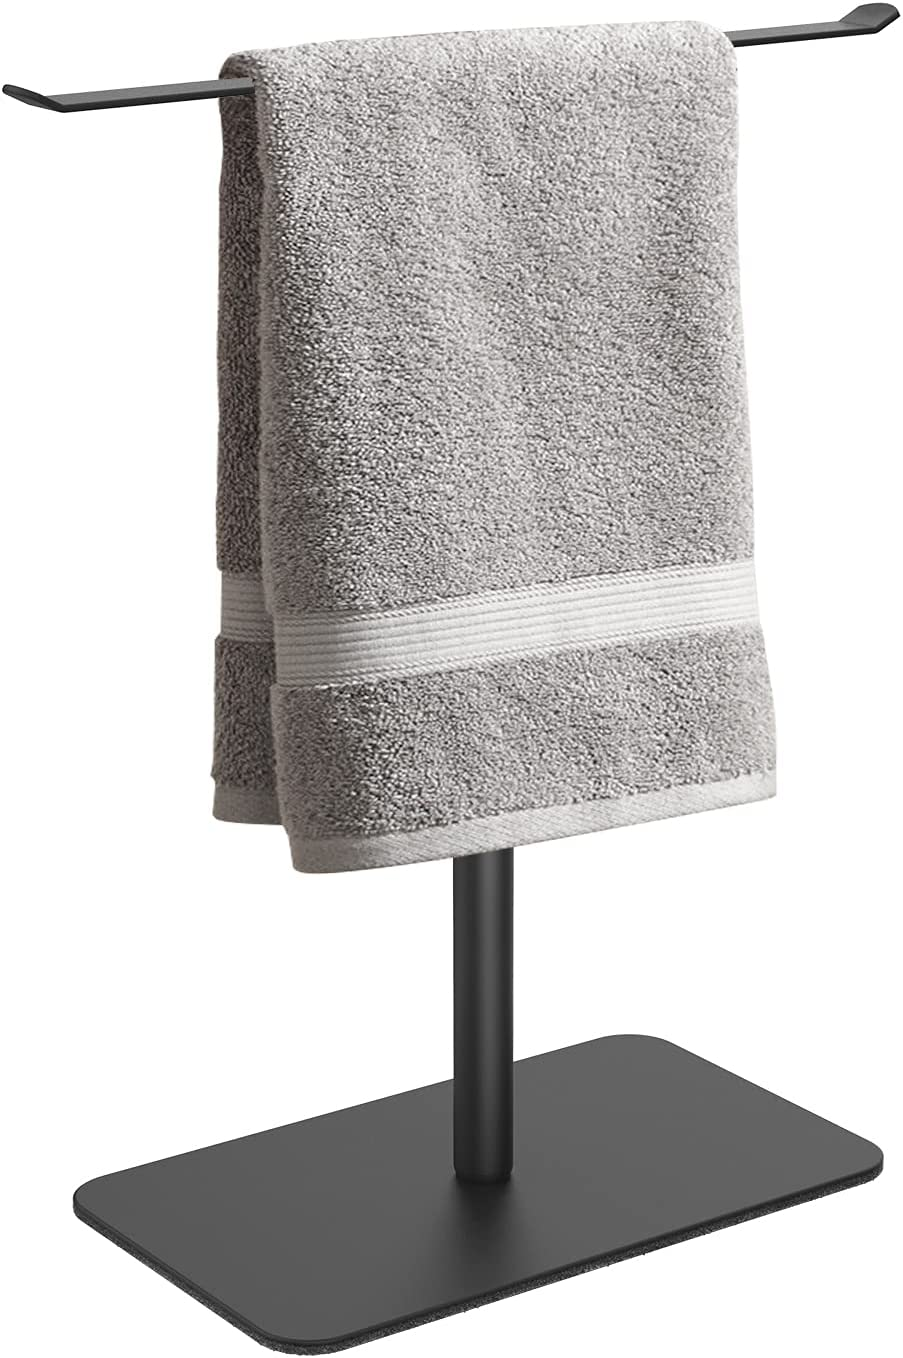 YUMORE Hand 5 ☆ very popular Towel Holder T-Shape Stand Rack Stainles Max 46% OFF